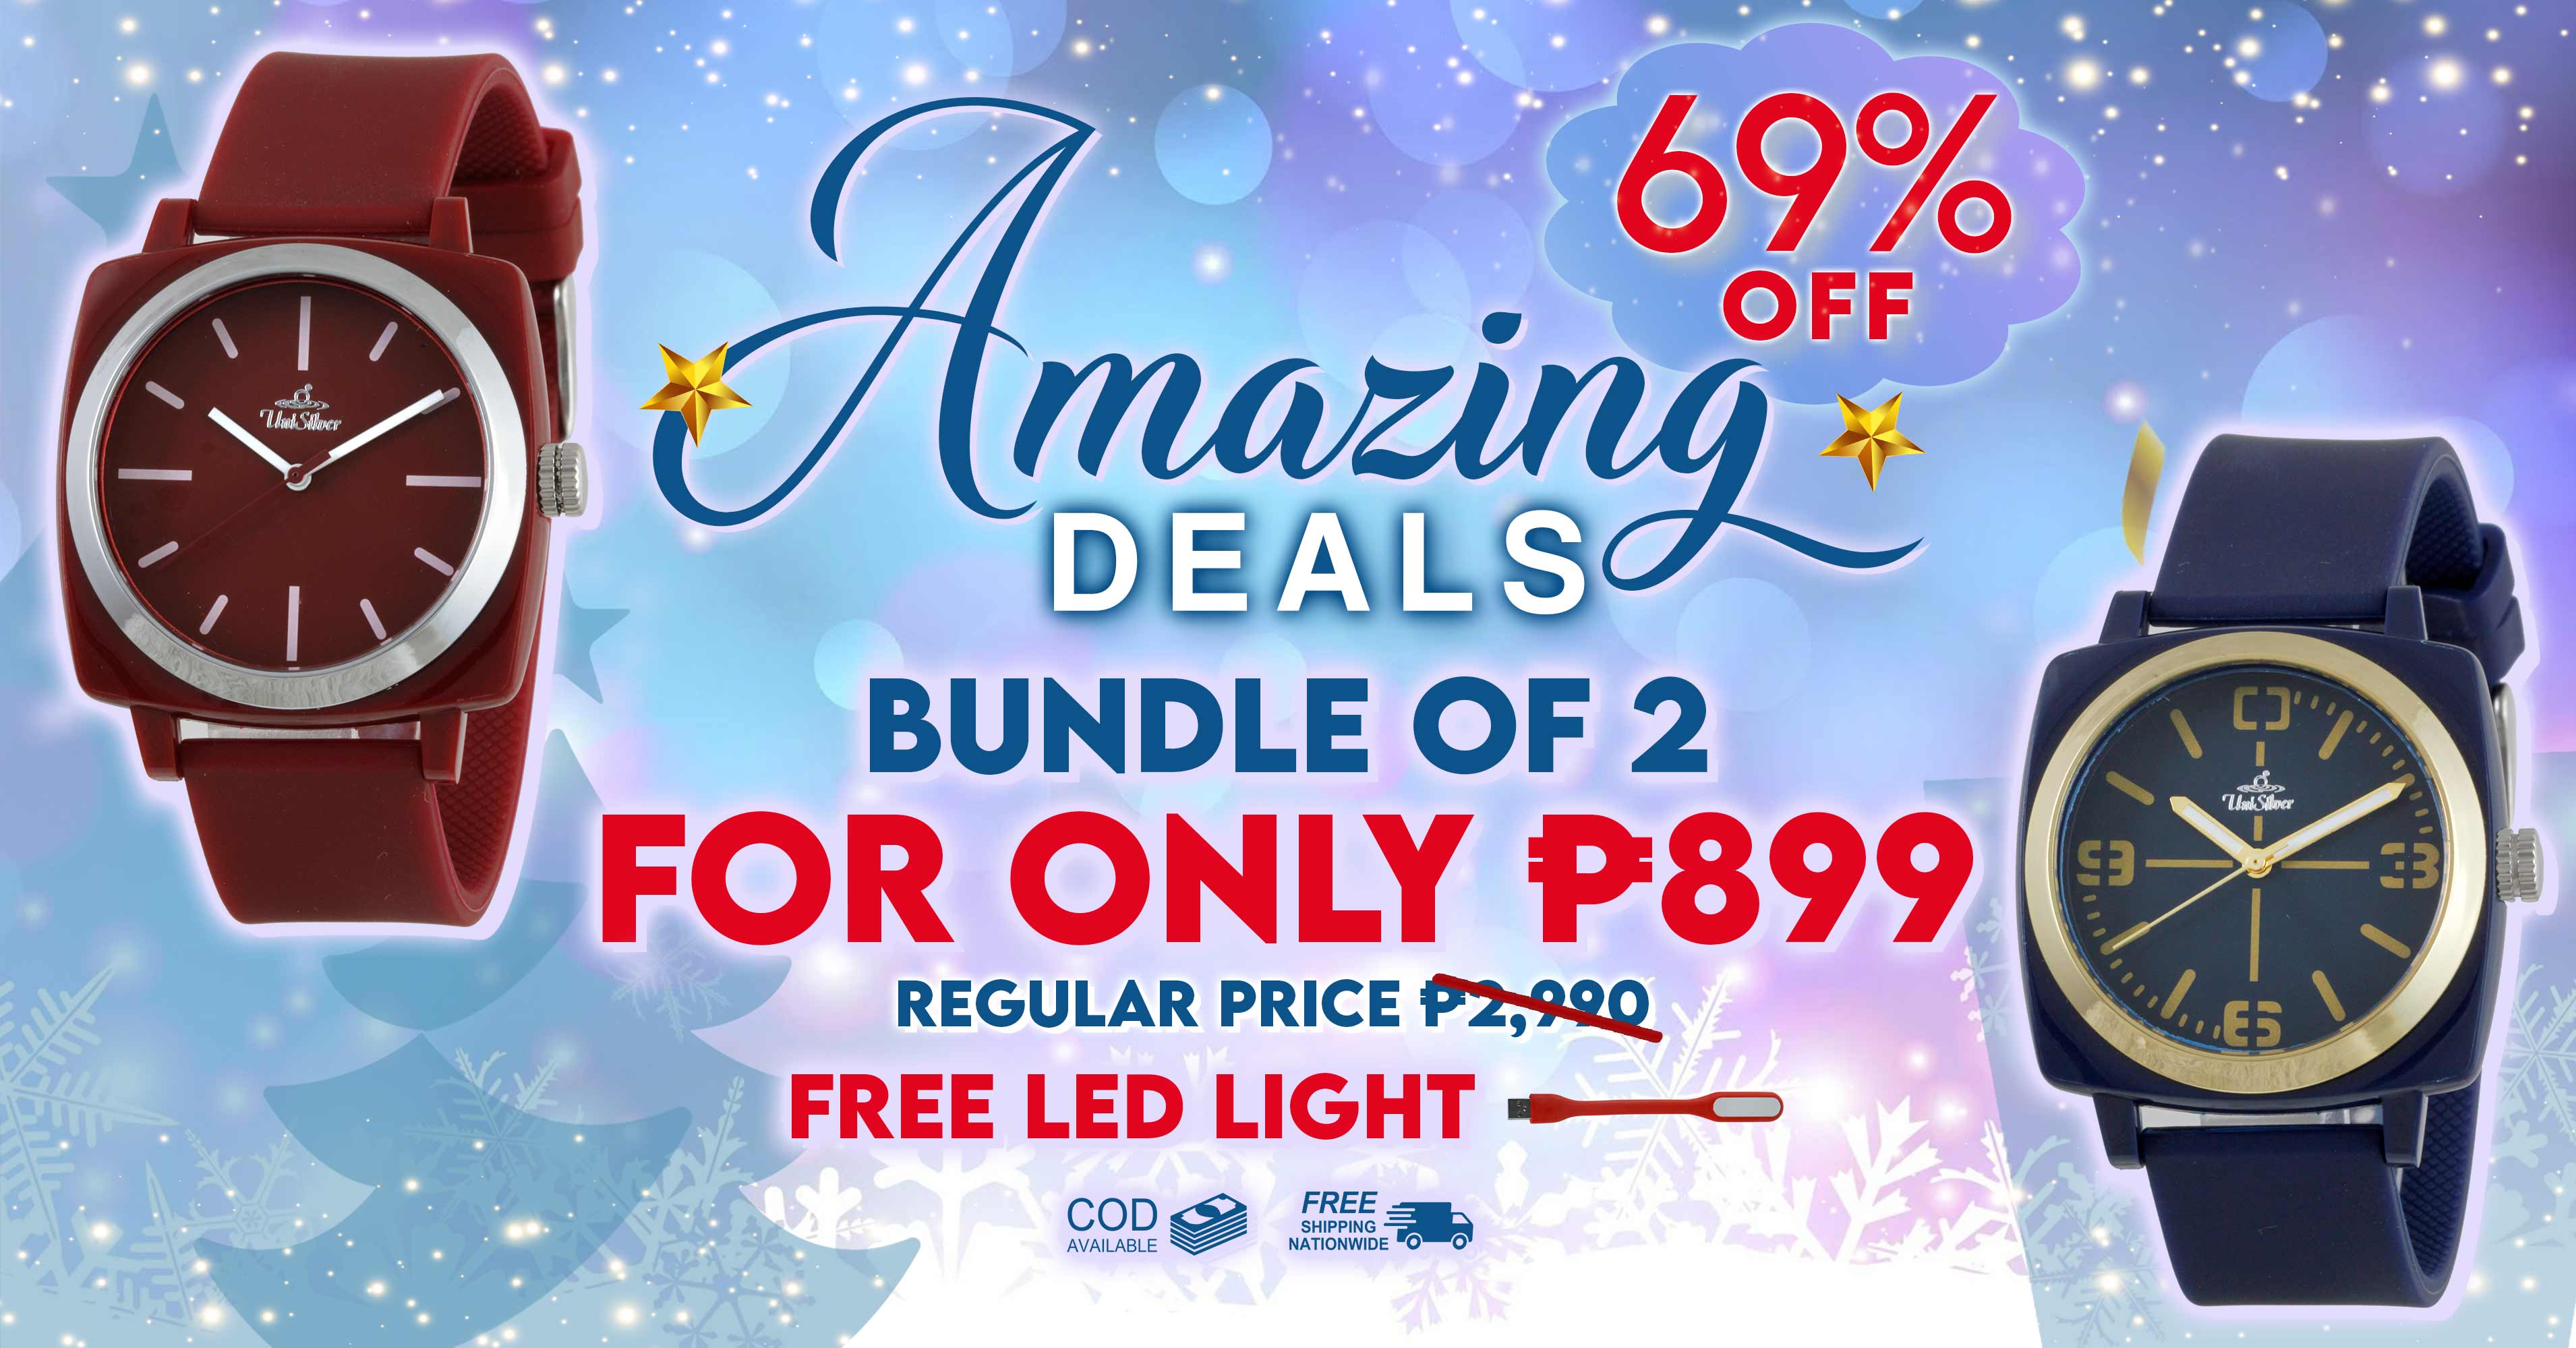 It's time for the Amazing Deals from UniSilver TIME!  Just pick any 2 for P899.  That's 69% off the regular price. Free shipping nationwide and cash on delivery option is available.  Also, get a free LED USB light.  This promo is only available online http://www.unisilvertime.com/ Hurry and order now here >>> http://bit.ly/31psjxg